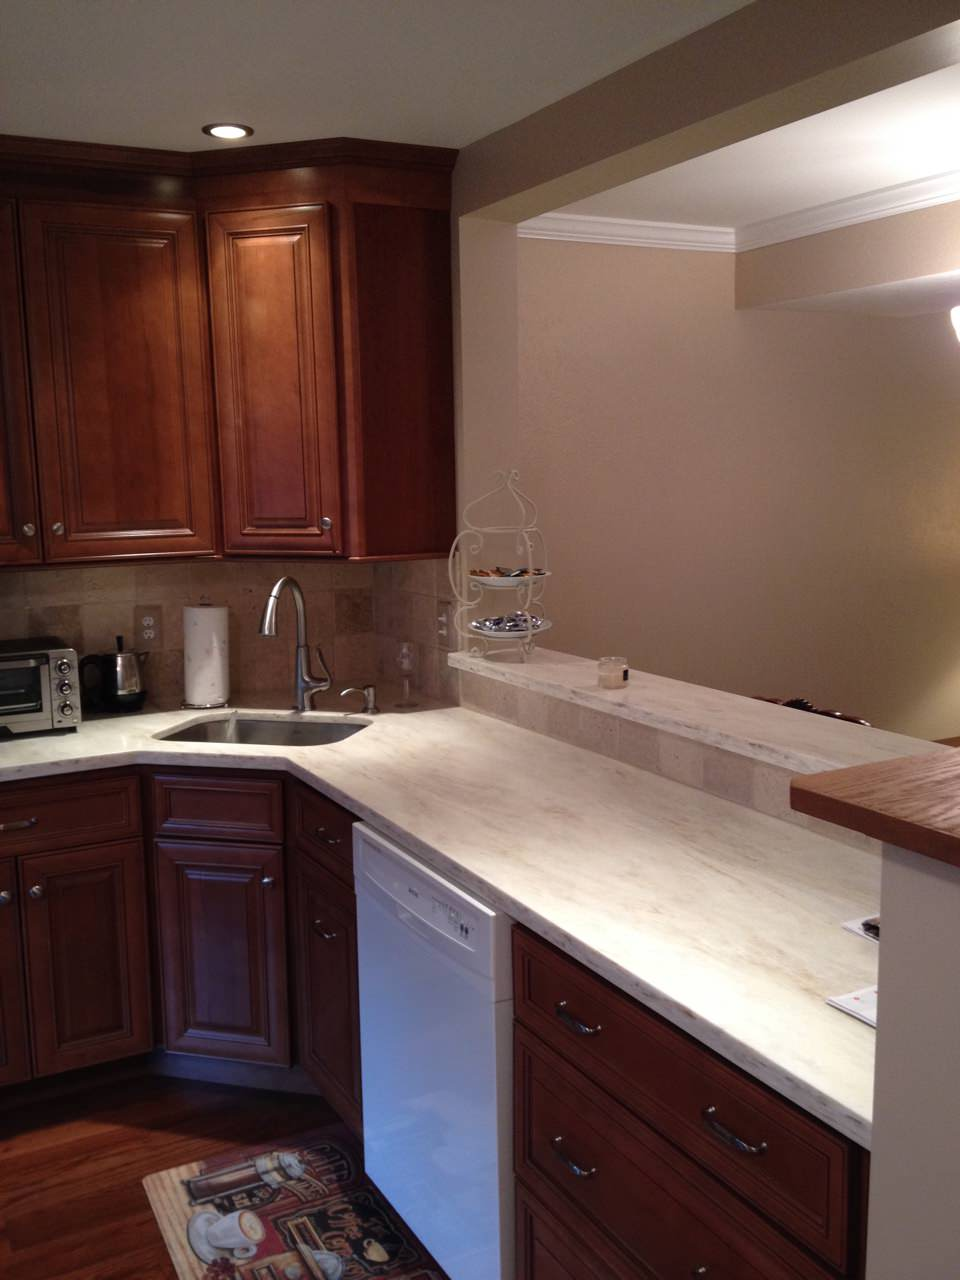 Townhouse Kitchen Remodel